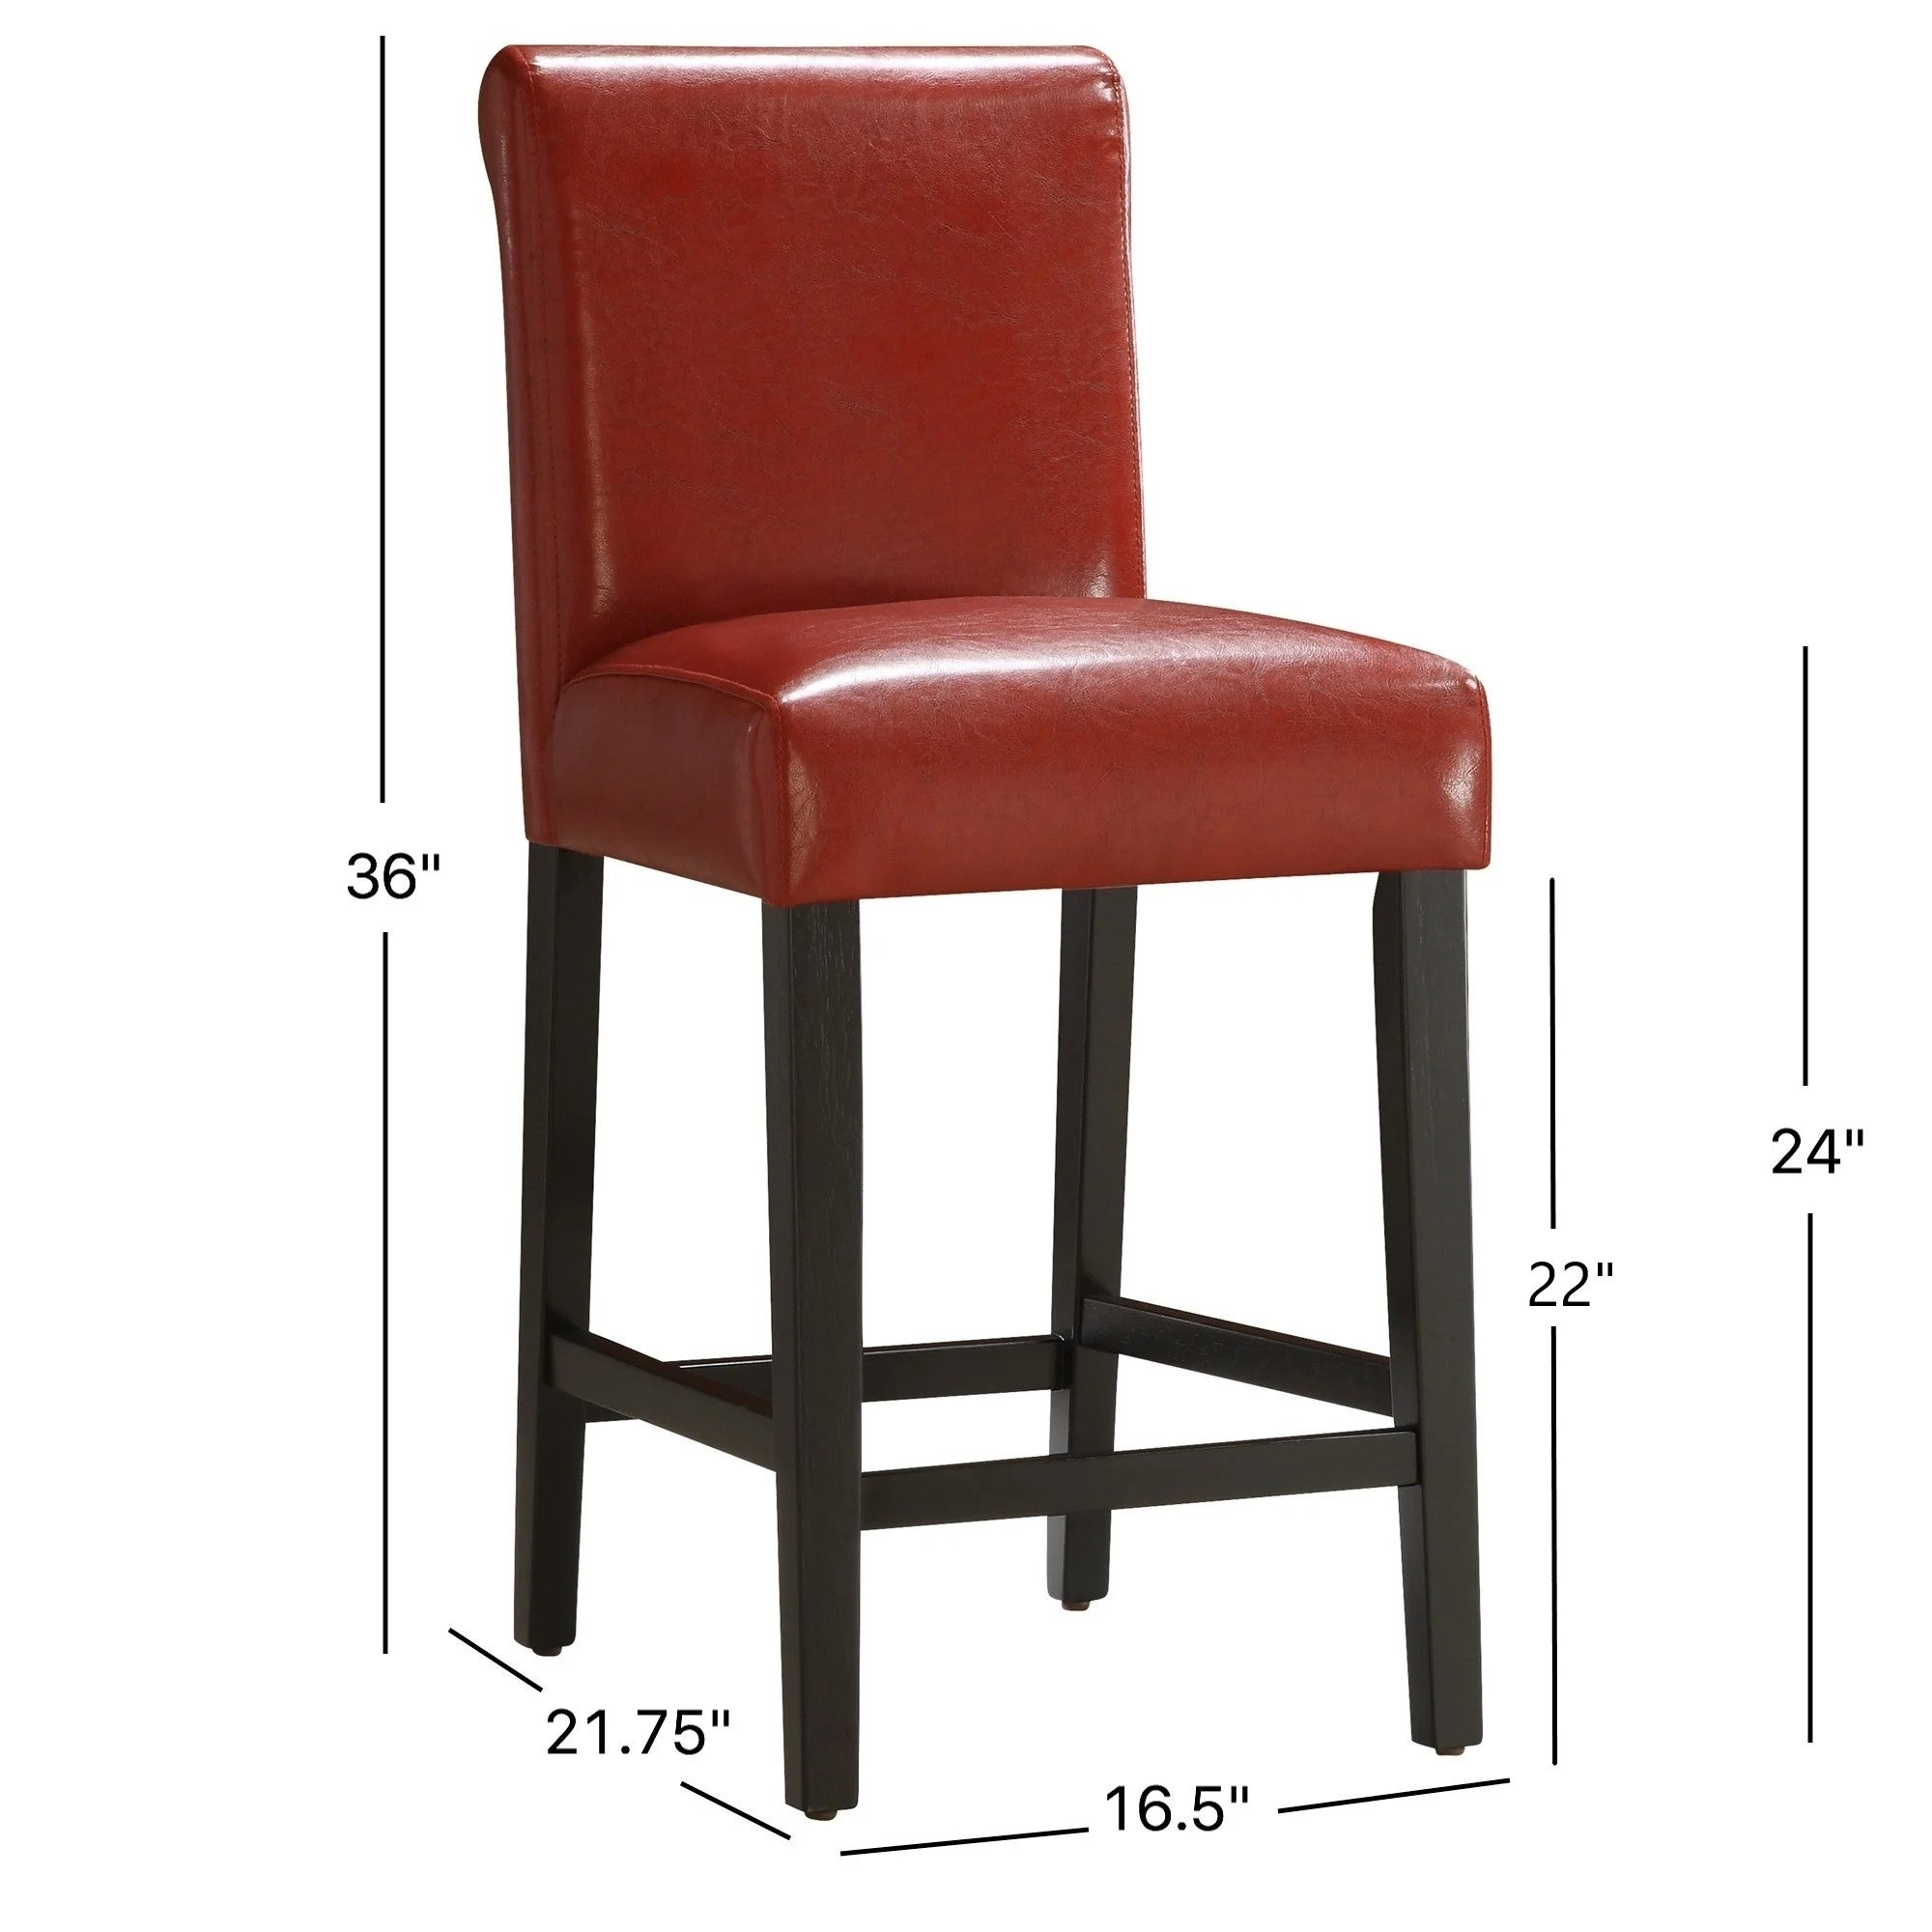 Shop Bennett 24 Inches Red Faux Leather High Back Bar Stools Set Of